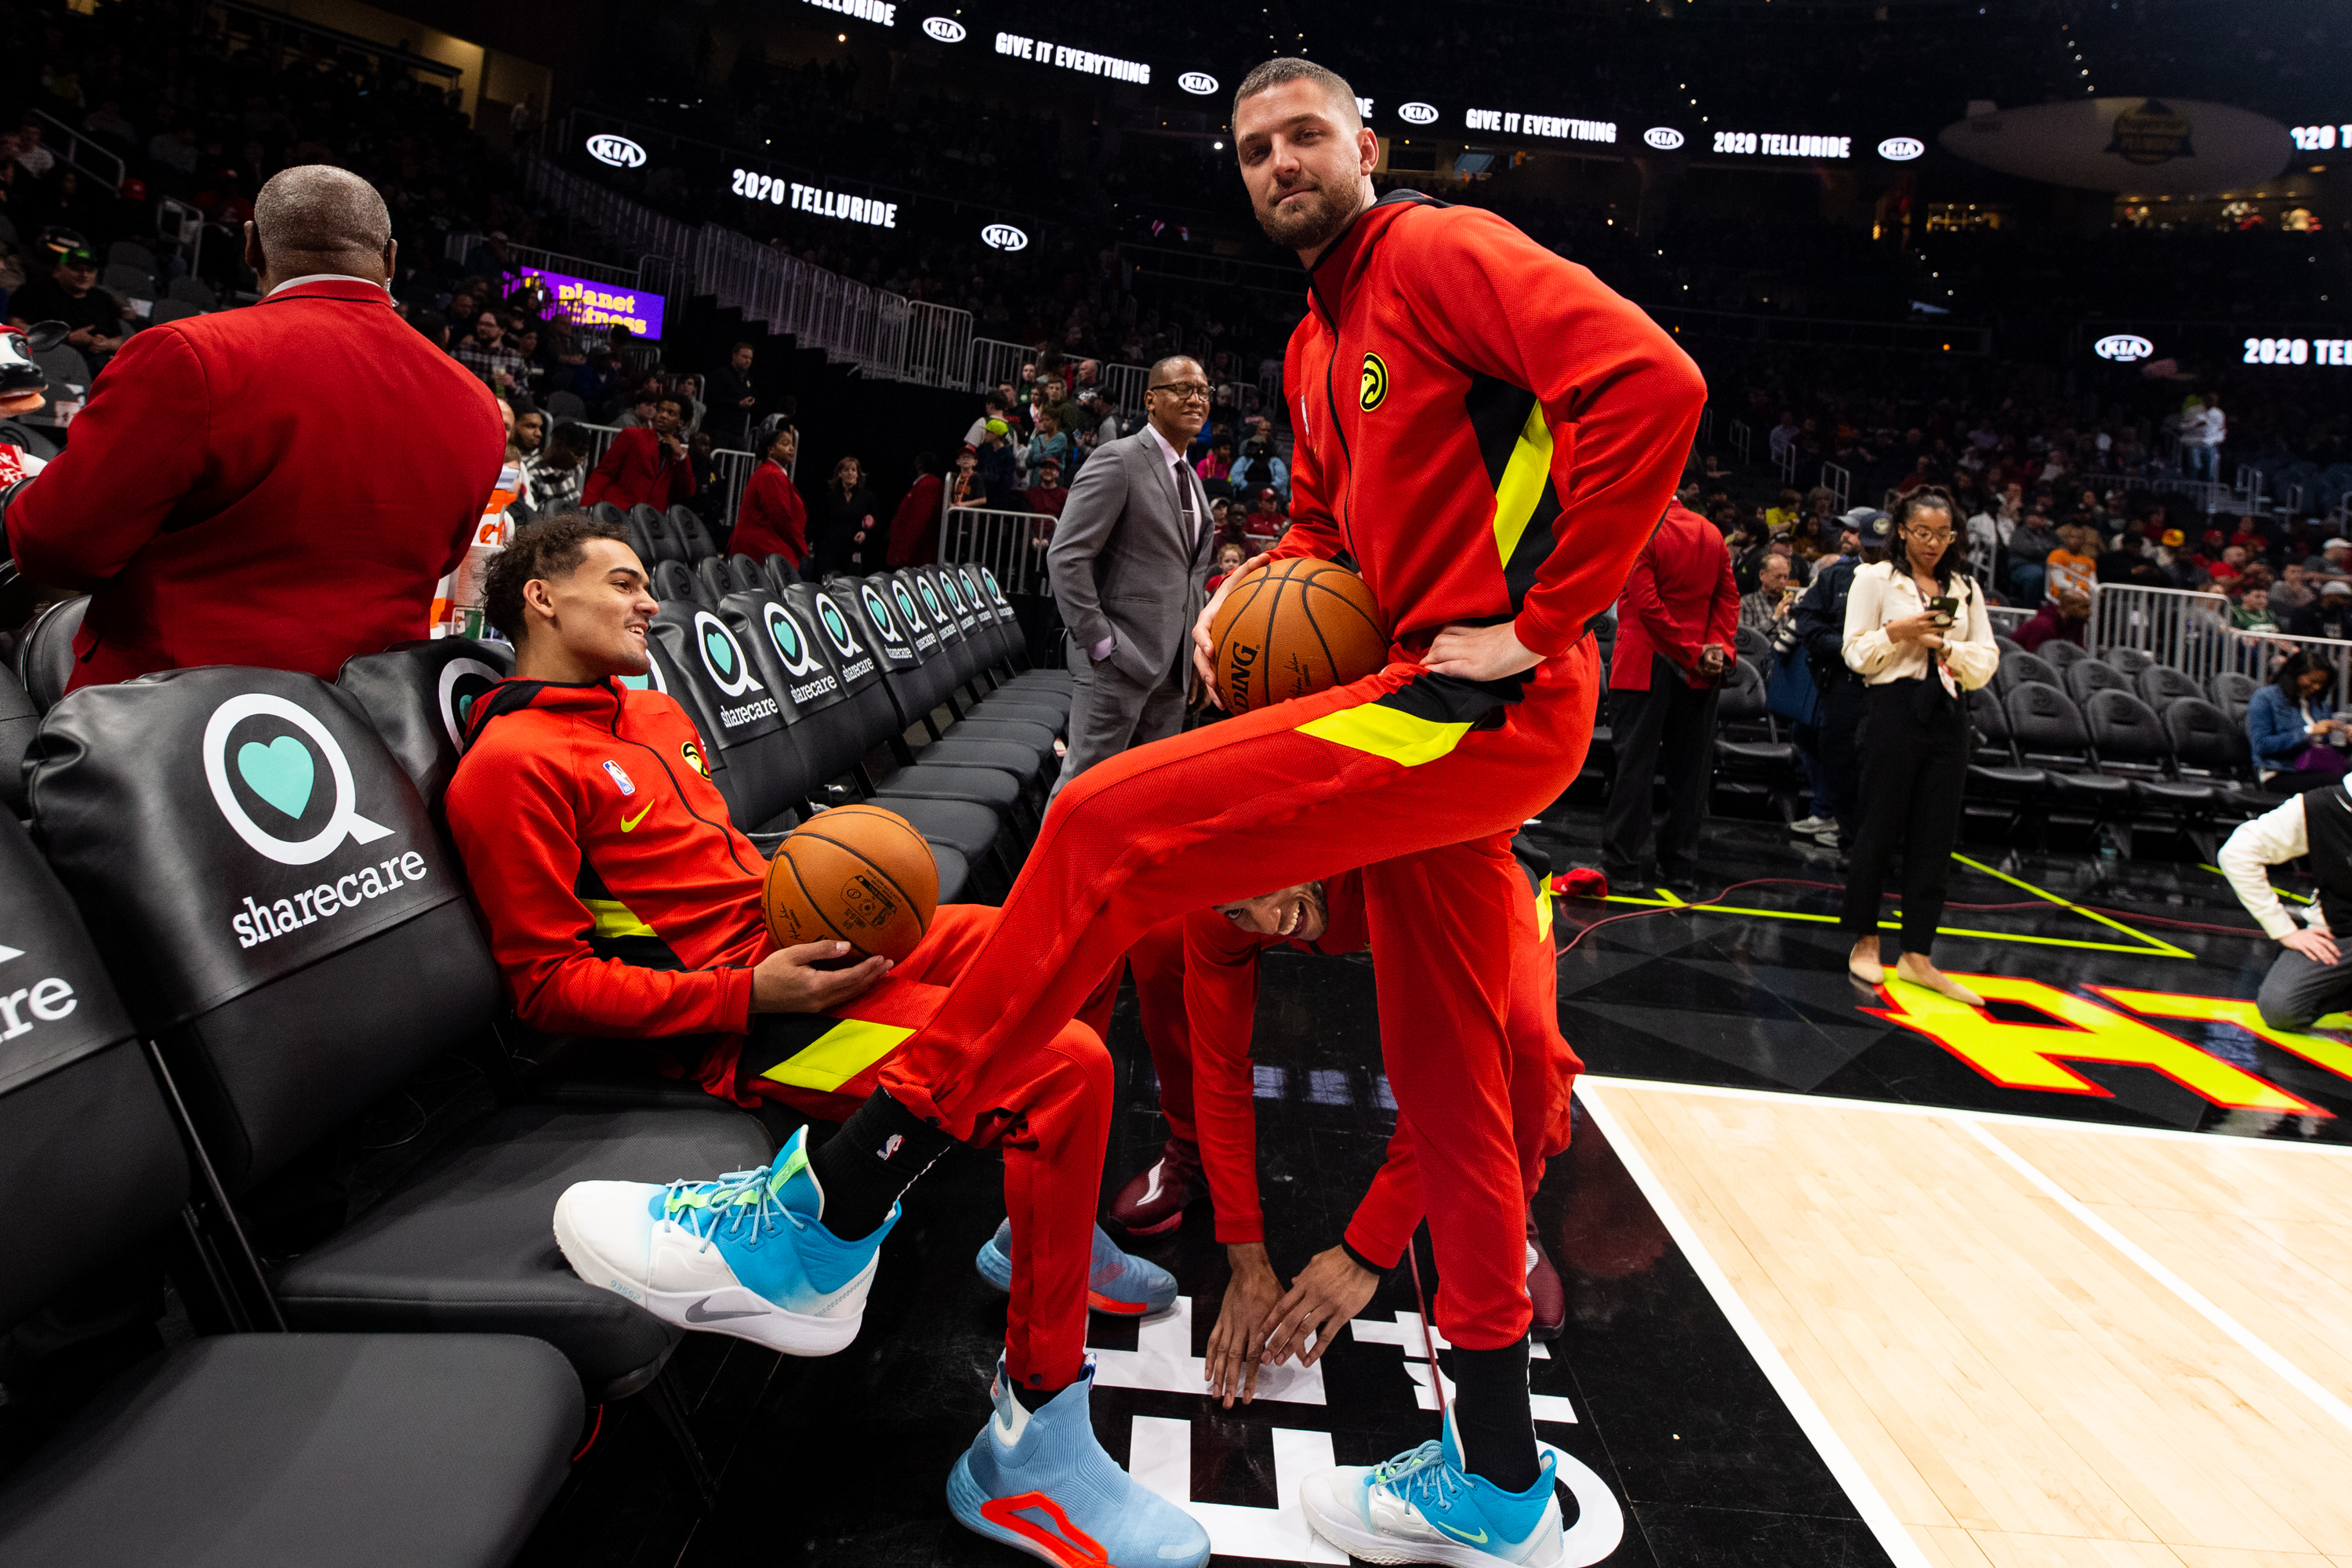 Trae Young and Chandler Parsons of the Atlanta Hawks looks on prior to a game